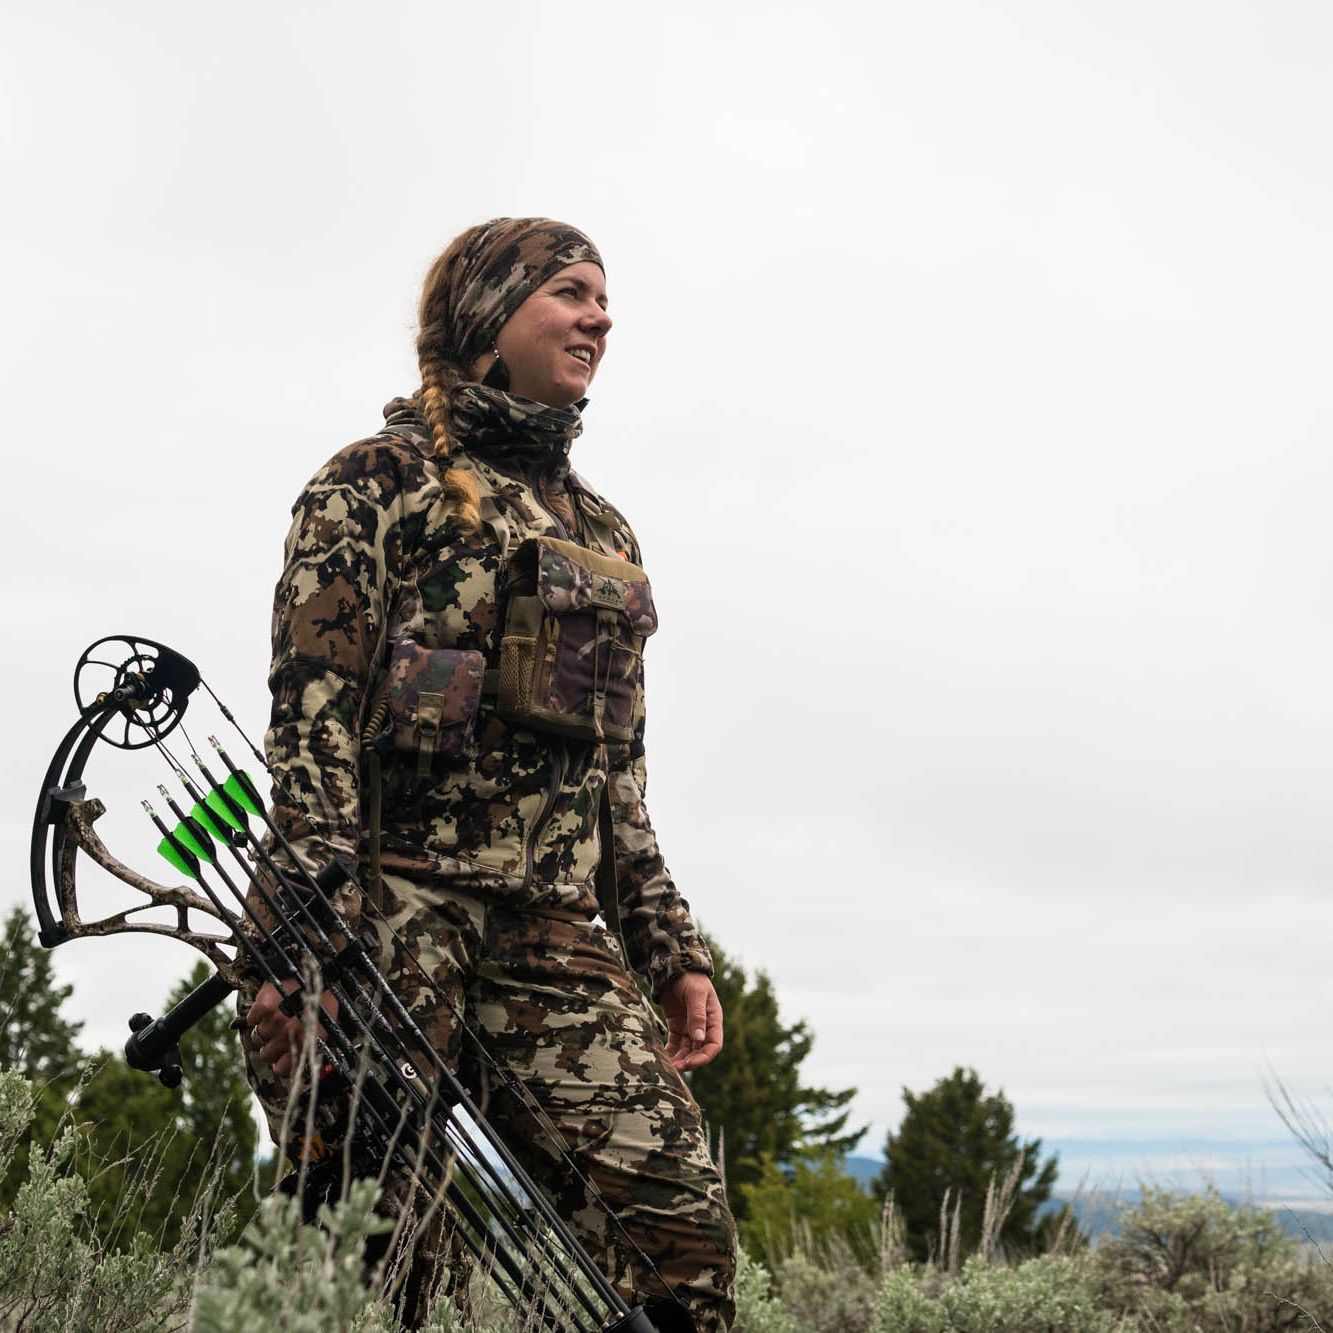 Jess Johnson - A hunter, adventurer, former ballerina, mule deer fanatic, conservationist…an advocate. Jess Johnson lives in Lander, Wyoming at the base of the wild Wind River Mountains. Her childhood instilled in her a wanderlust for wide expanses of public land and a deep appreciation for the wildlife that inhabit it. Since moving back to Wyoming, she spends her free time archery hunting and exploring the mountains and rolling sage brush slopes. Jess works for the Wyoming Wildlife Federation, is a founder of Artemis Sportswoman, and is a Wyoming chapter board member for the Backcountry Hunters and Anglers. She is changing the narrative around the stereotype of hunters and works to create platforms for women's voices within the hunting conservation world.